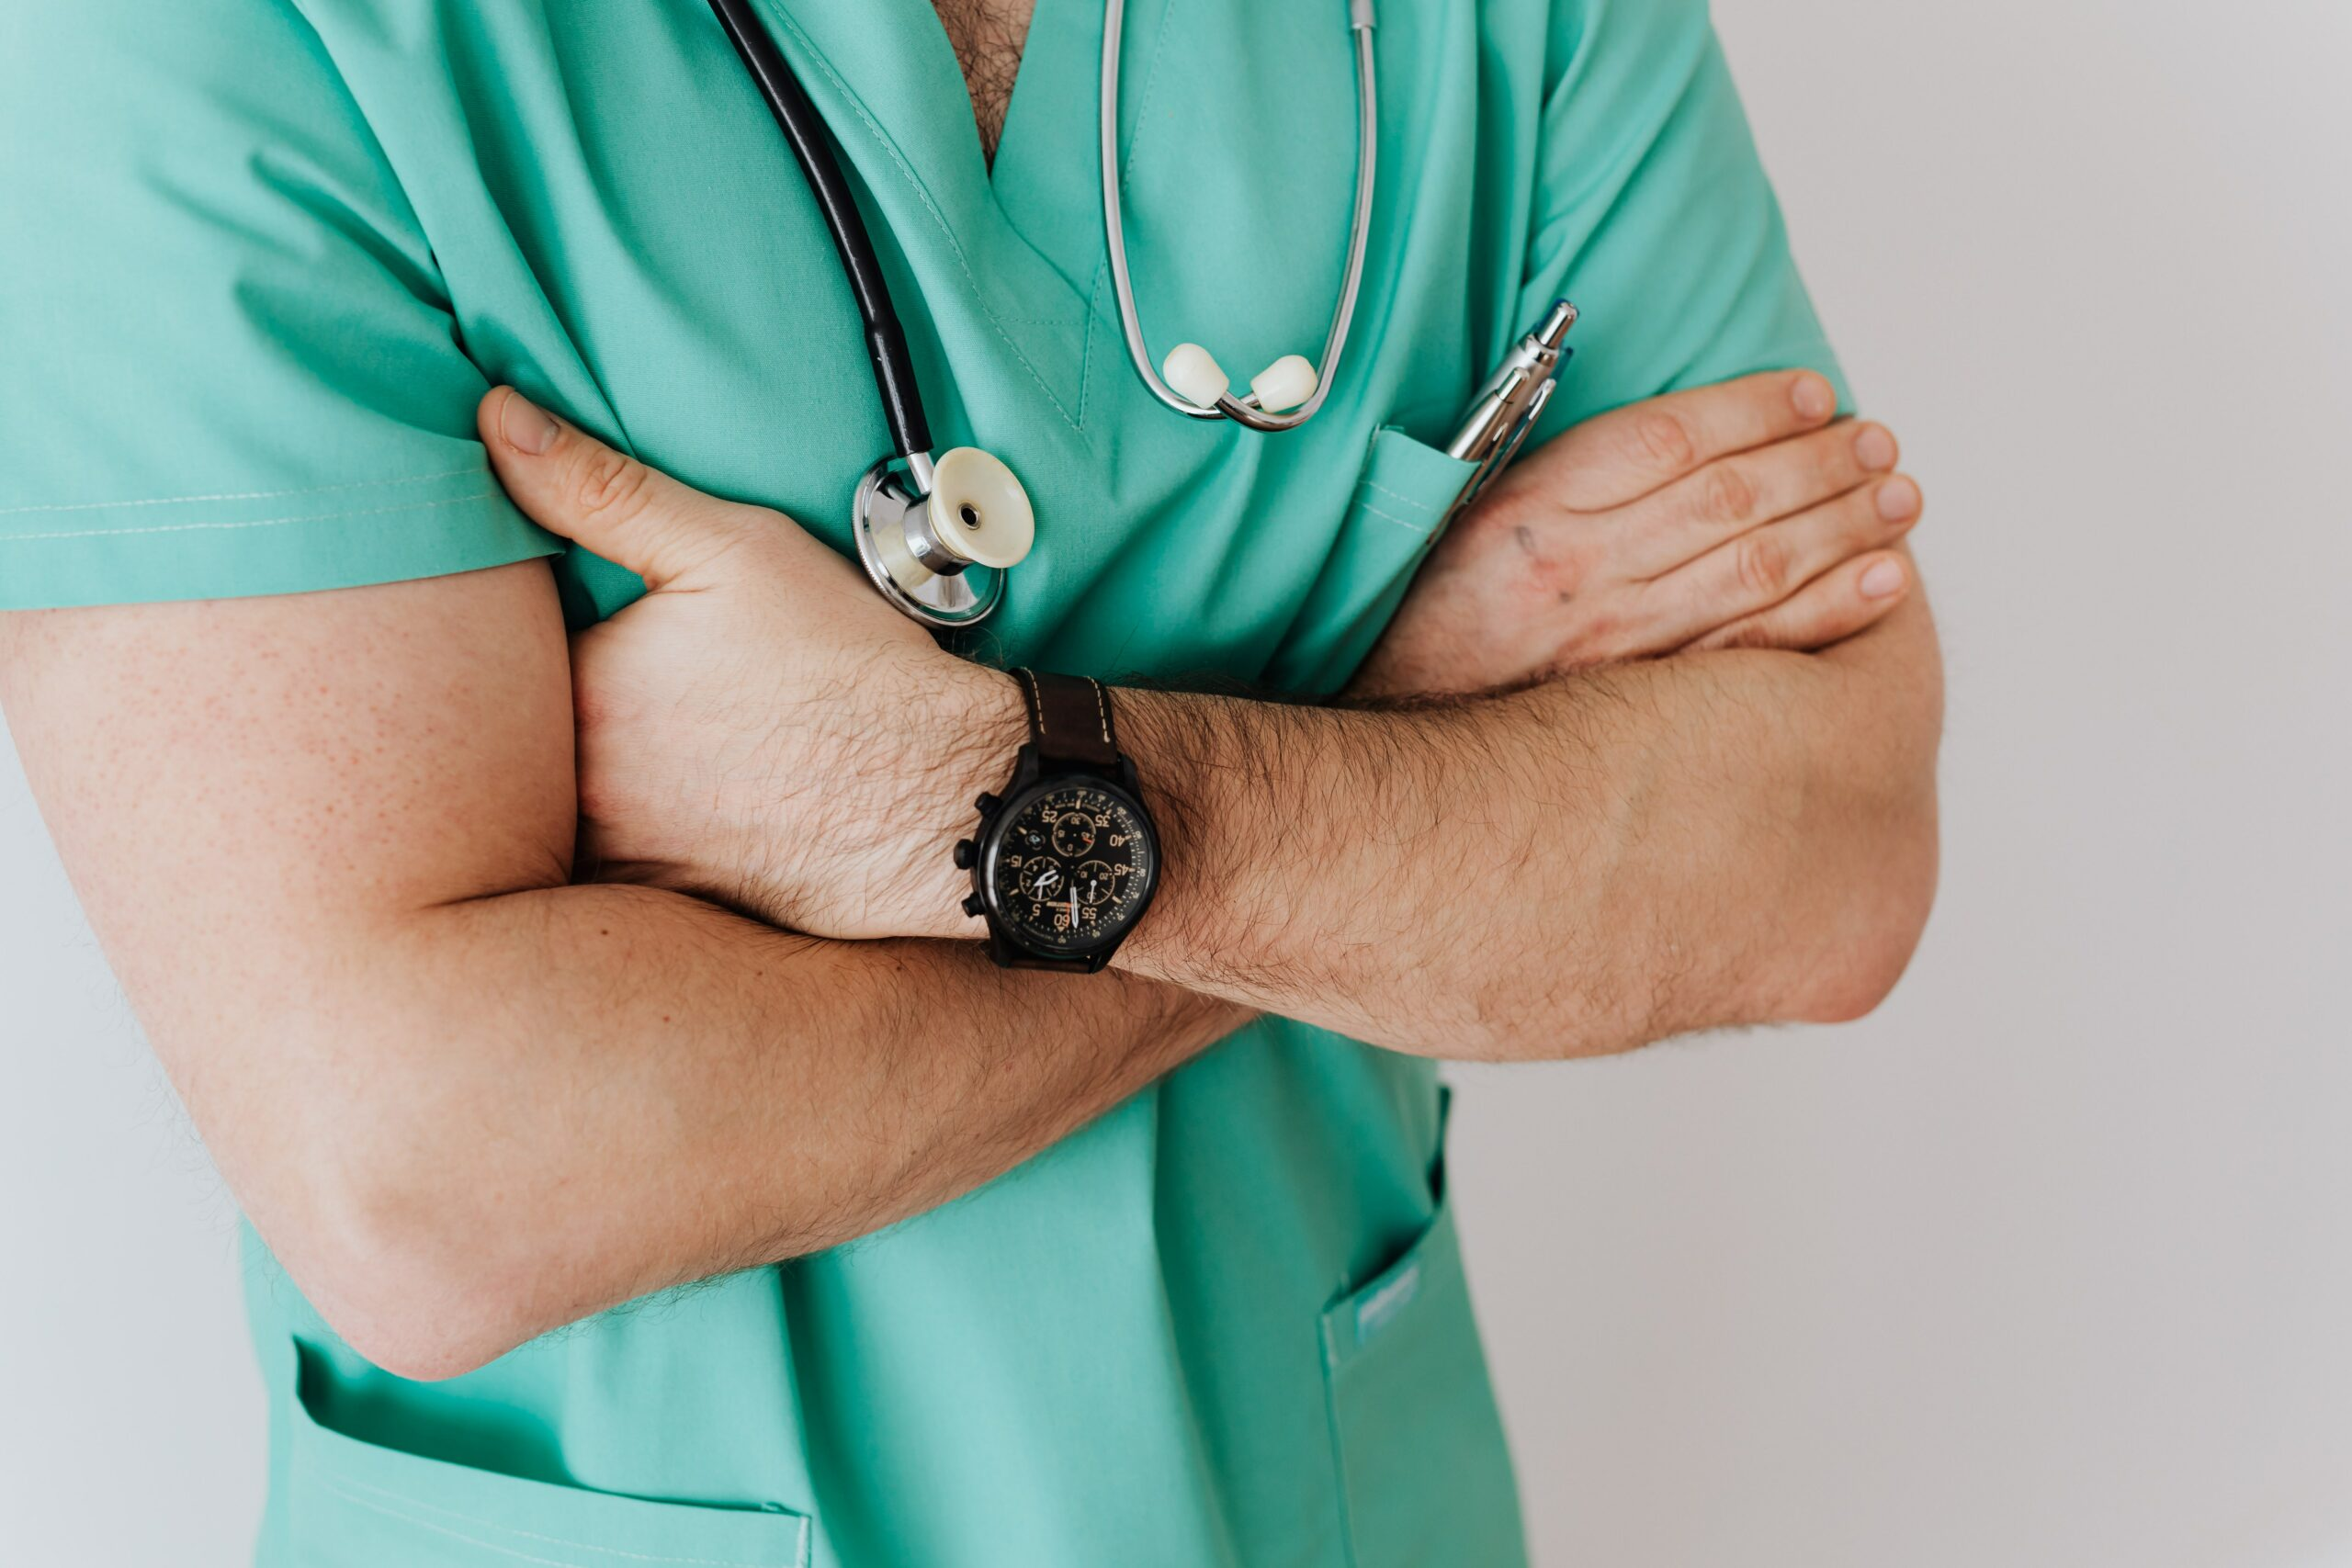 how long does it take to become a medical assistant